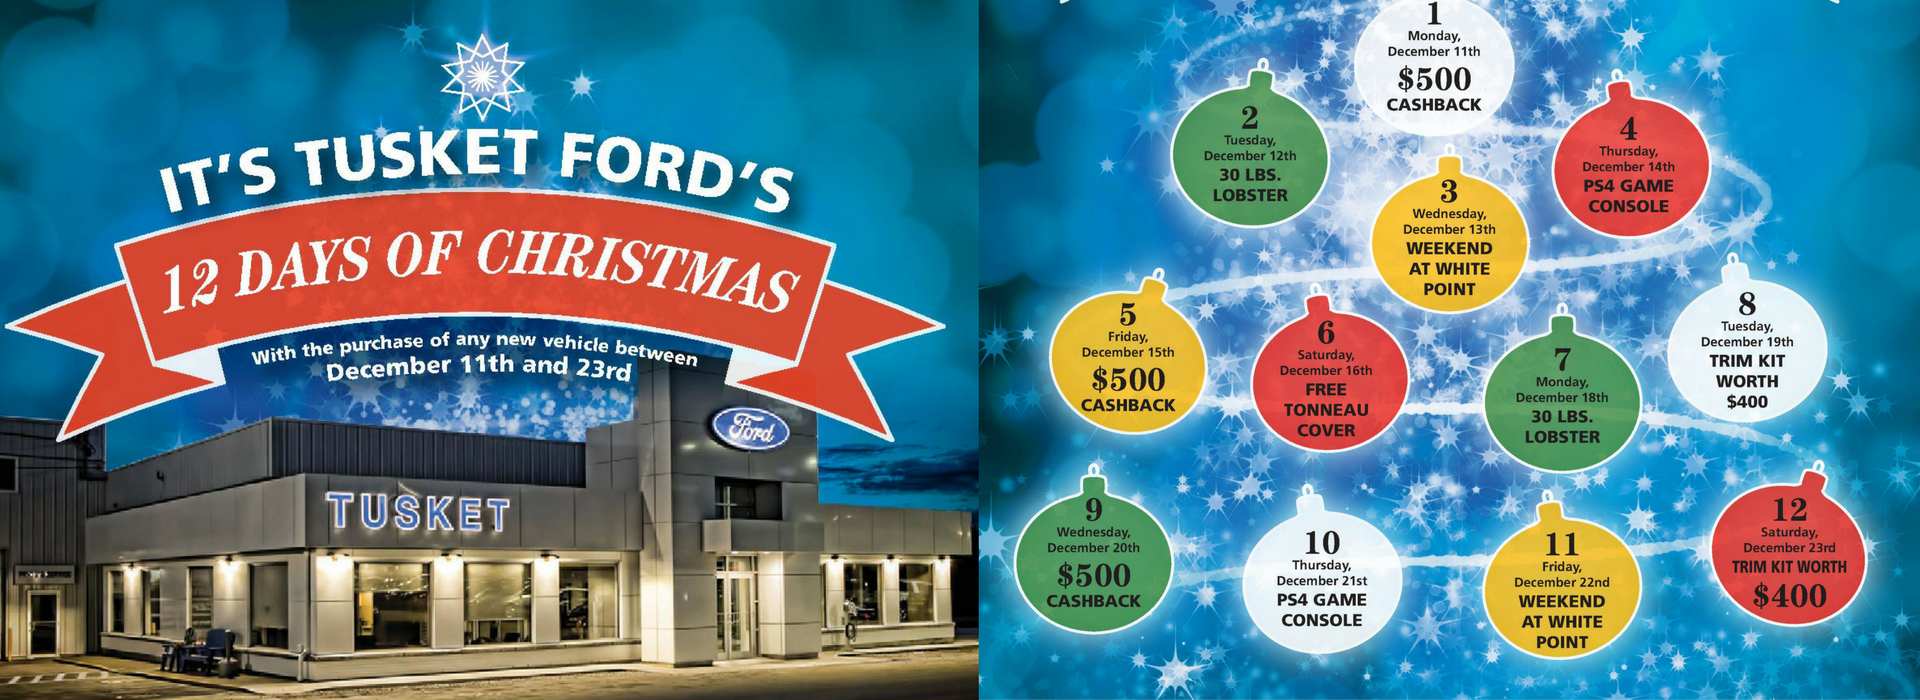 Tusket Ford's 12 Days of Christmas Event